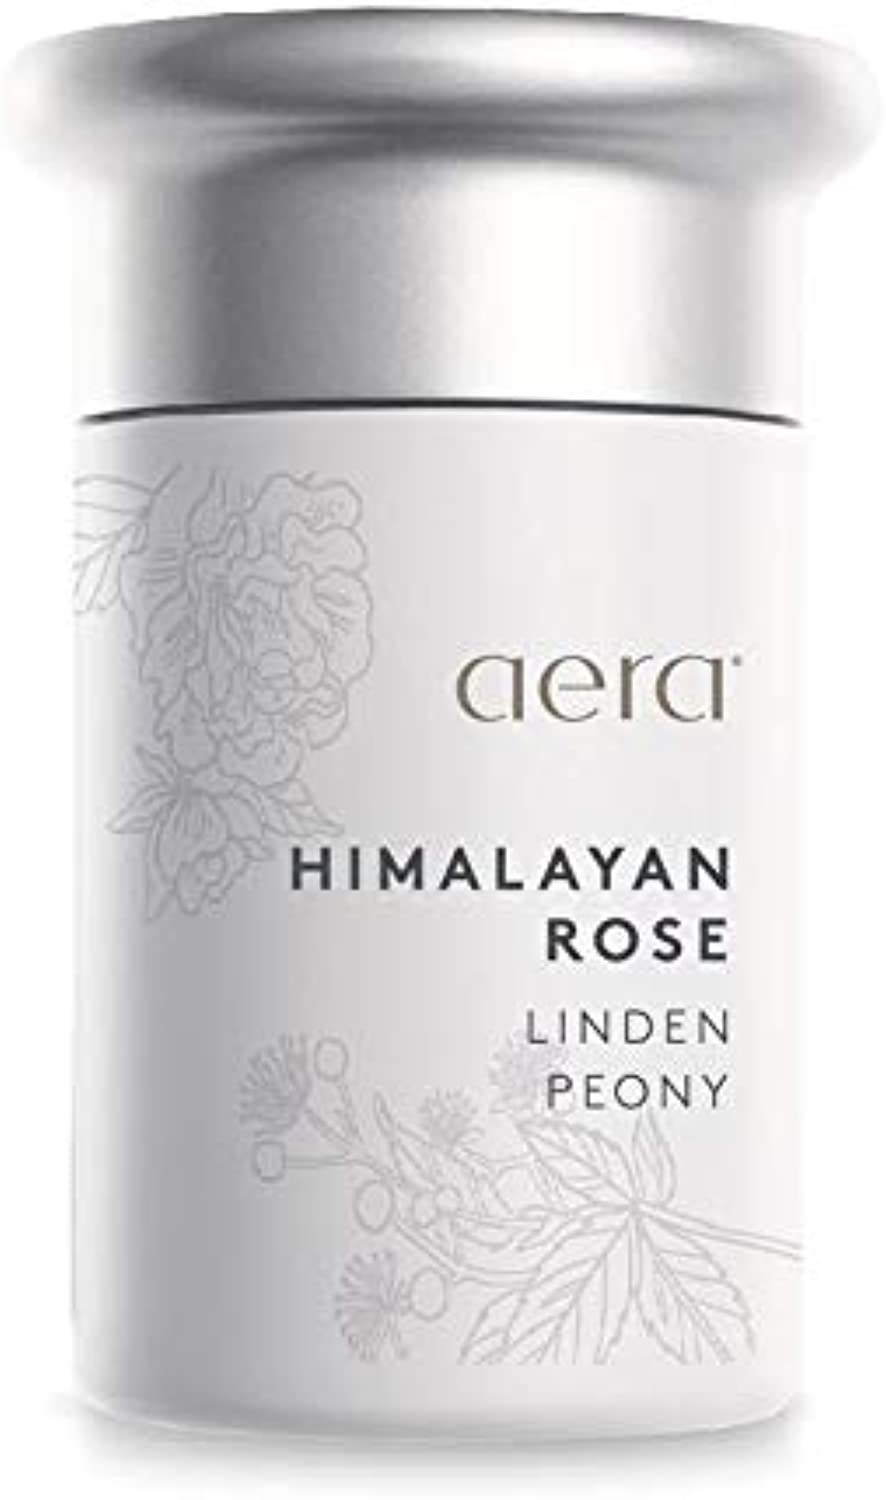 Himalayan pink Home Fragrance Scent, Hypoallergenic Formula w Notes of Himalayan pink, Linden, Peony - Schedule Using App With Aera Smart 2.0 Diffuser - State Of The Art Air Freshener Technology